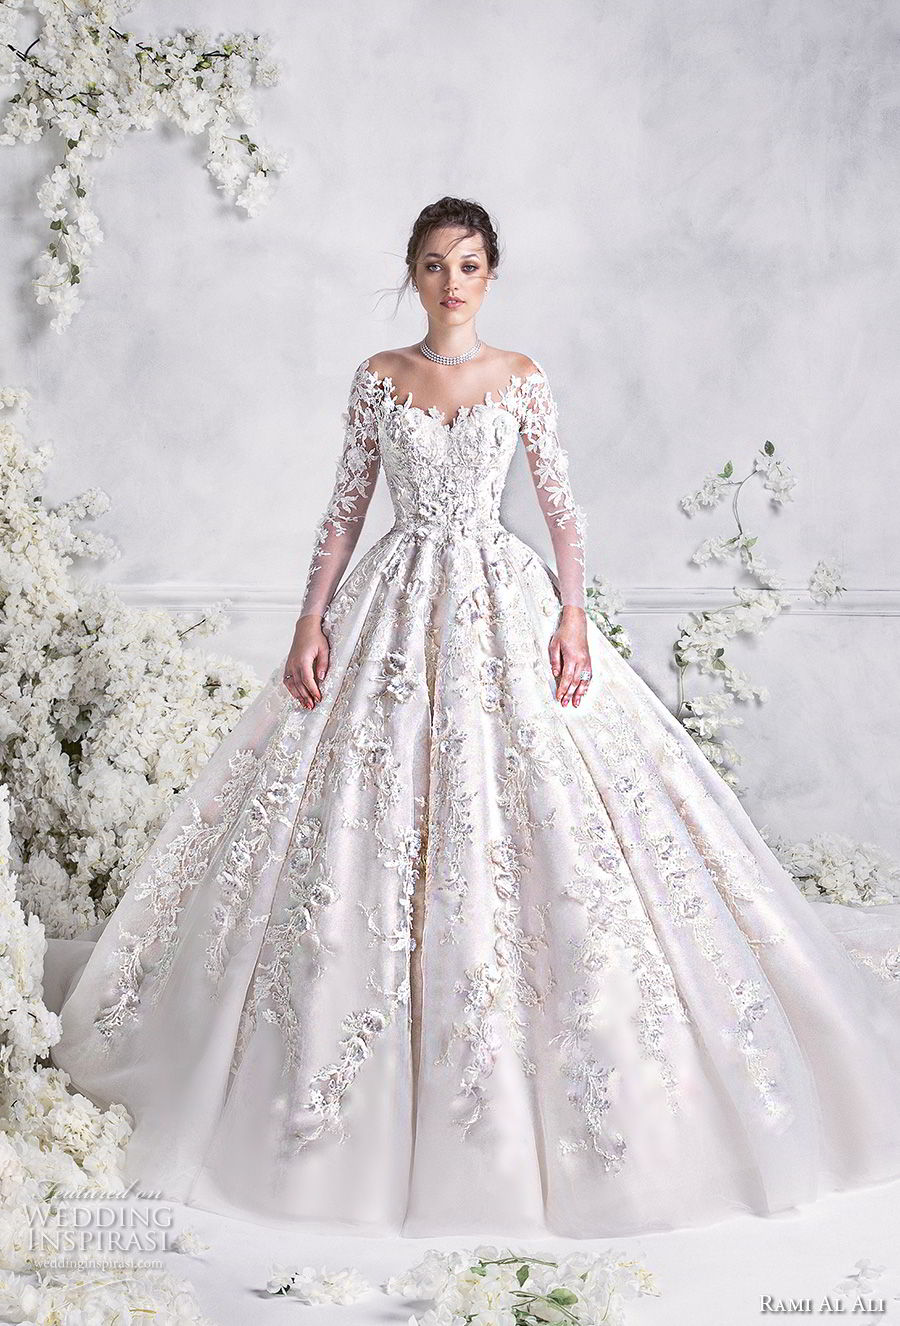 Rami Al Ali 2018 Bridal Long Sleeves Off The Shoulder Sweetheart Neckline Full Embellishment Princess Ball